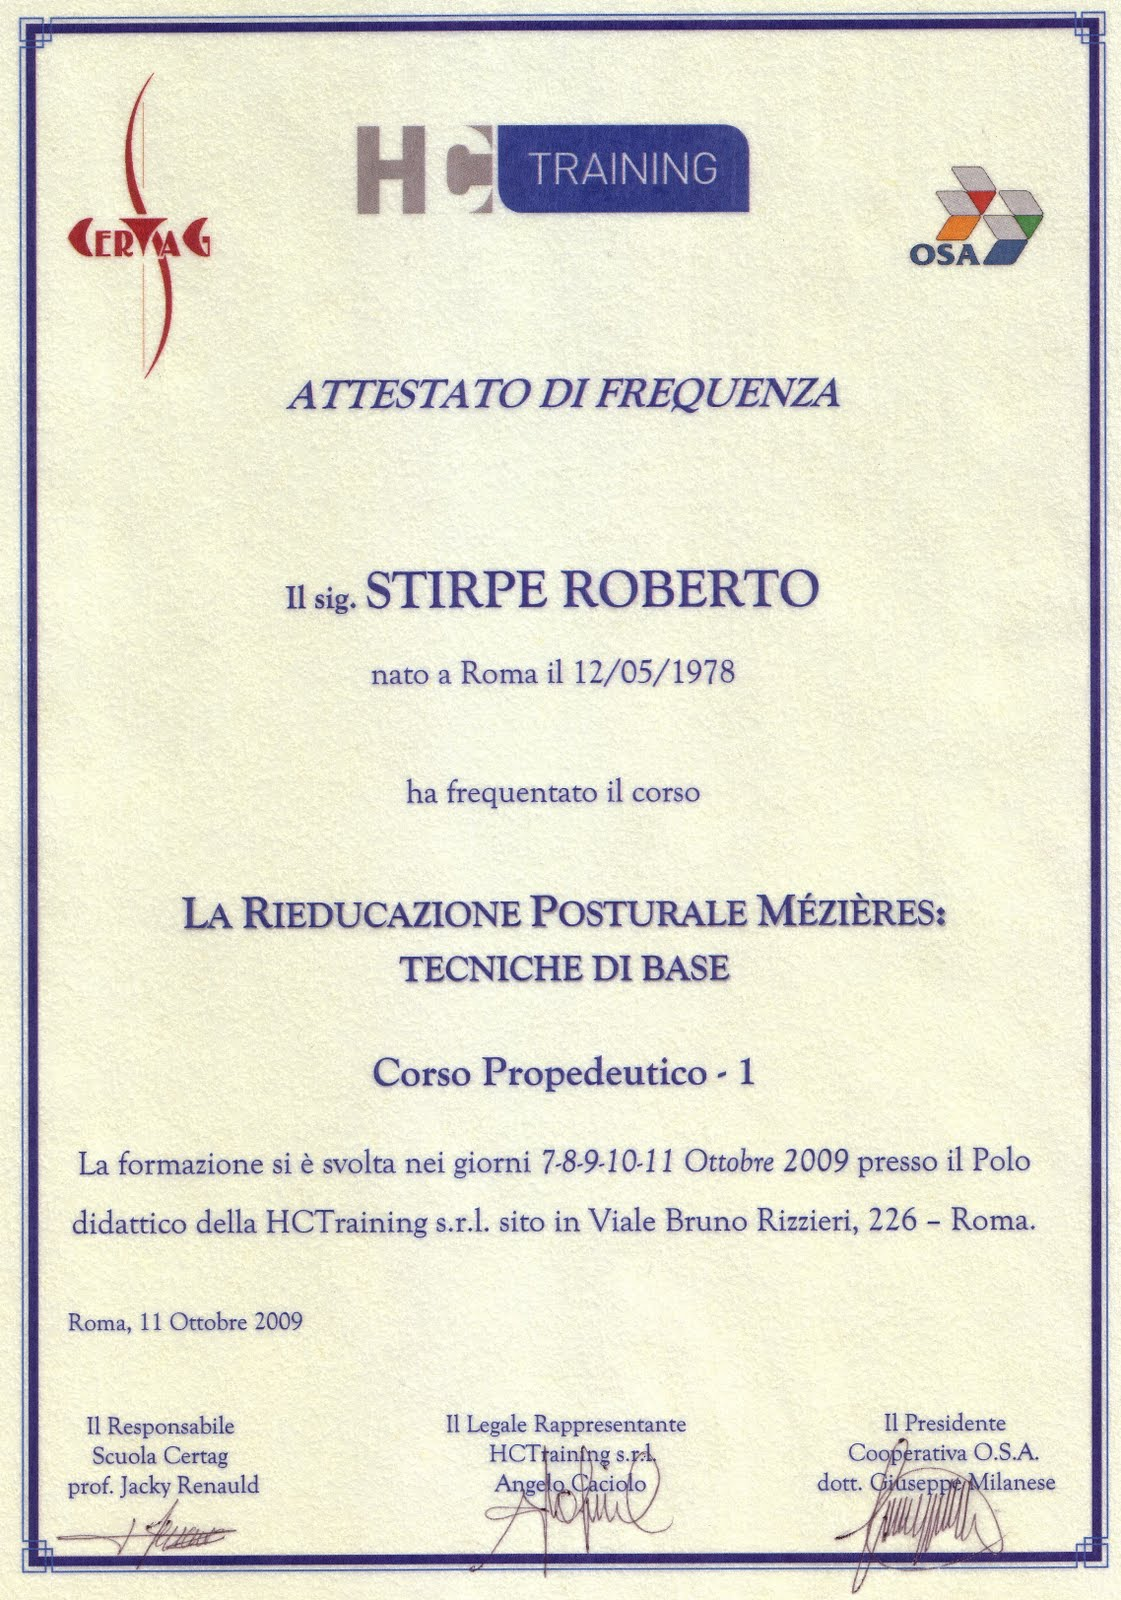 posturale-mezieres-1-Roberto-Stirpe-Personal-Trainer